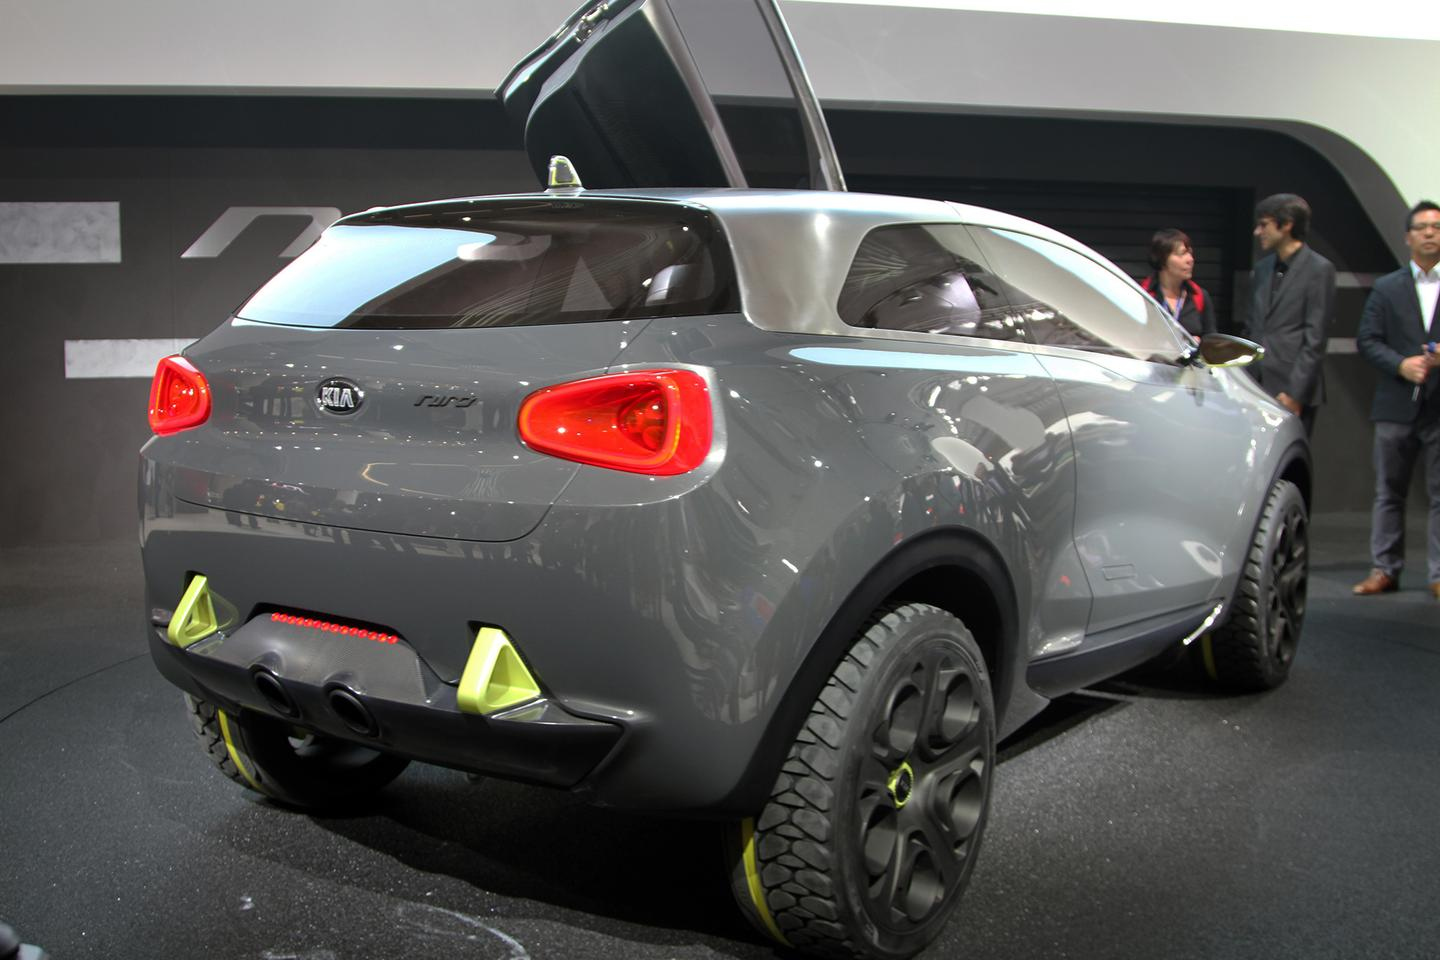 Niro concept has special rubber in the form of 225/40R20 tires (Photo: Gizmag.com)